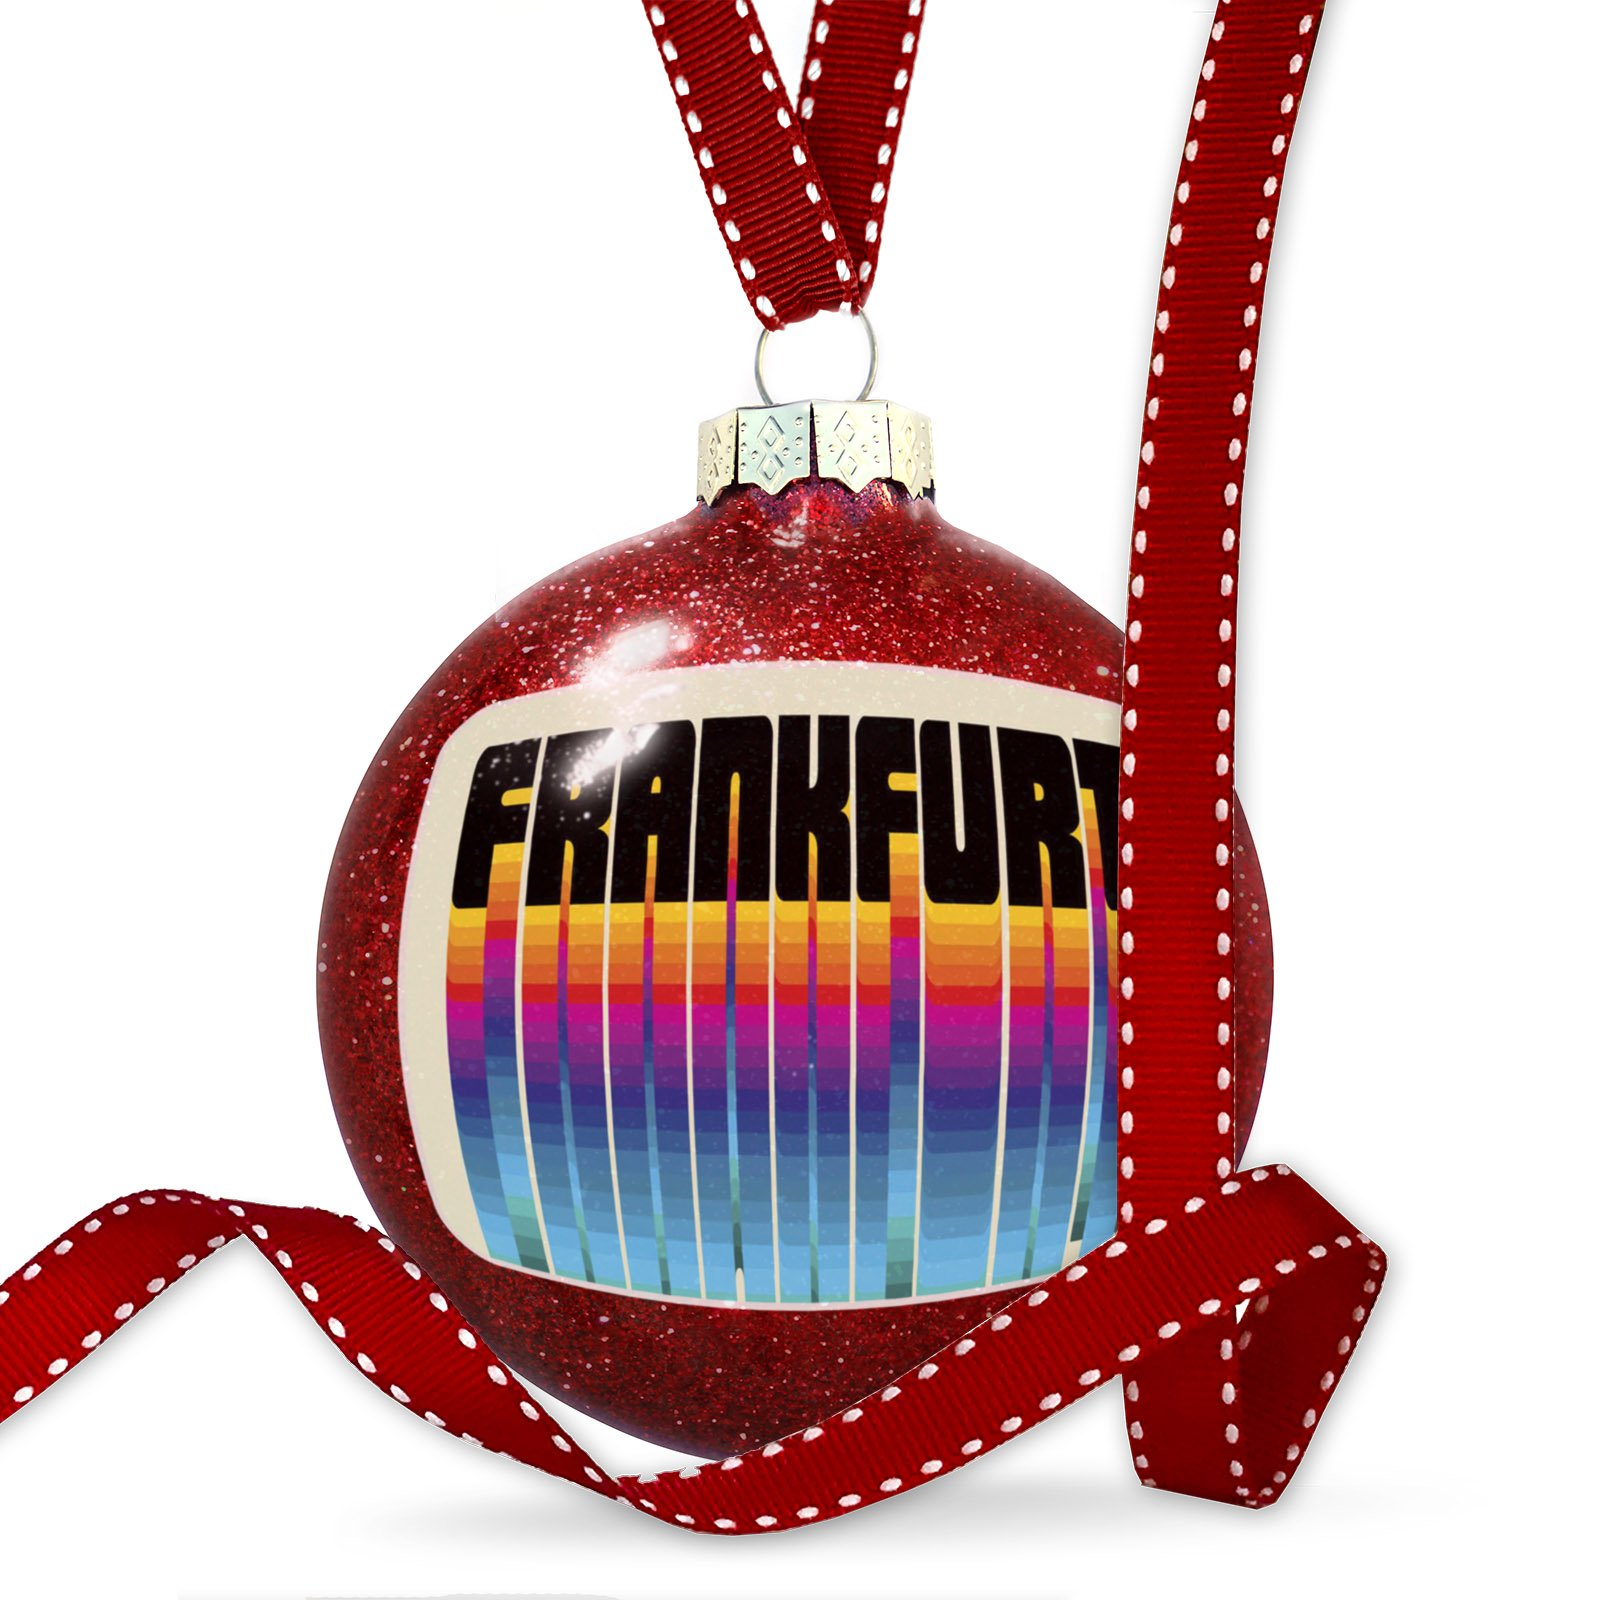 Christmas Decoration Retro Cites States Countries Frankfurt Ornament